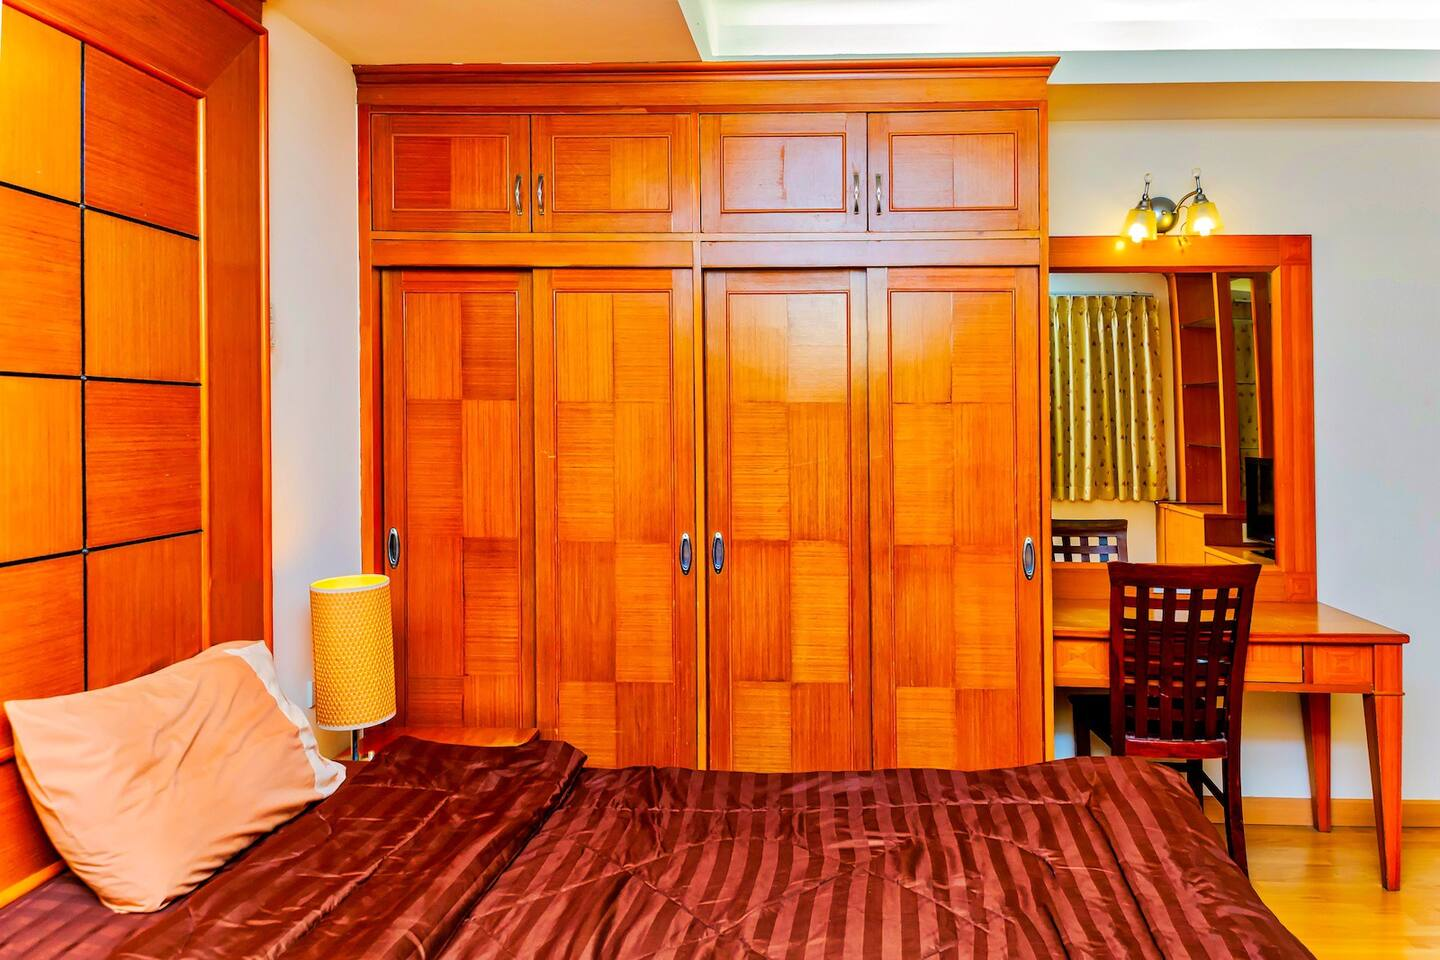 Apartment New 5 King Room in the Center of Pattaya City  Best area  photo 18777806